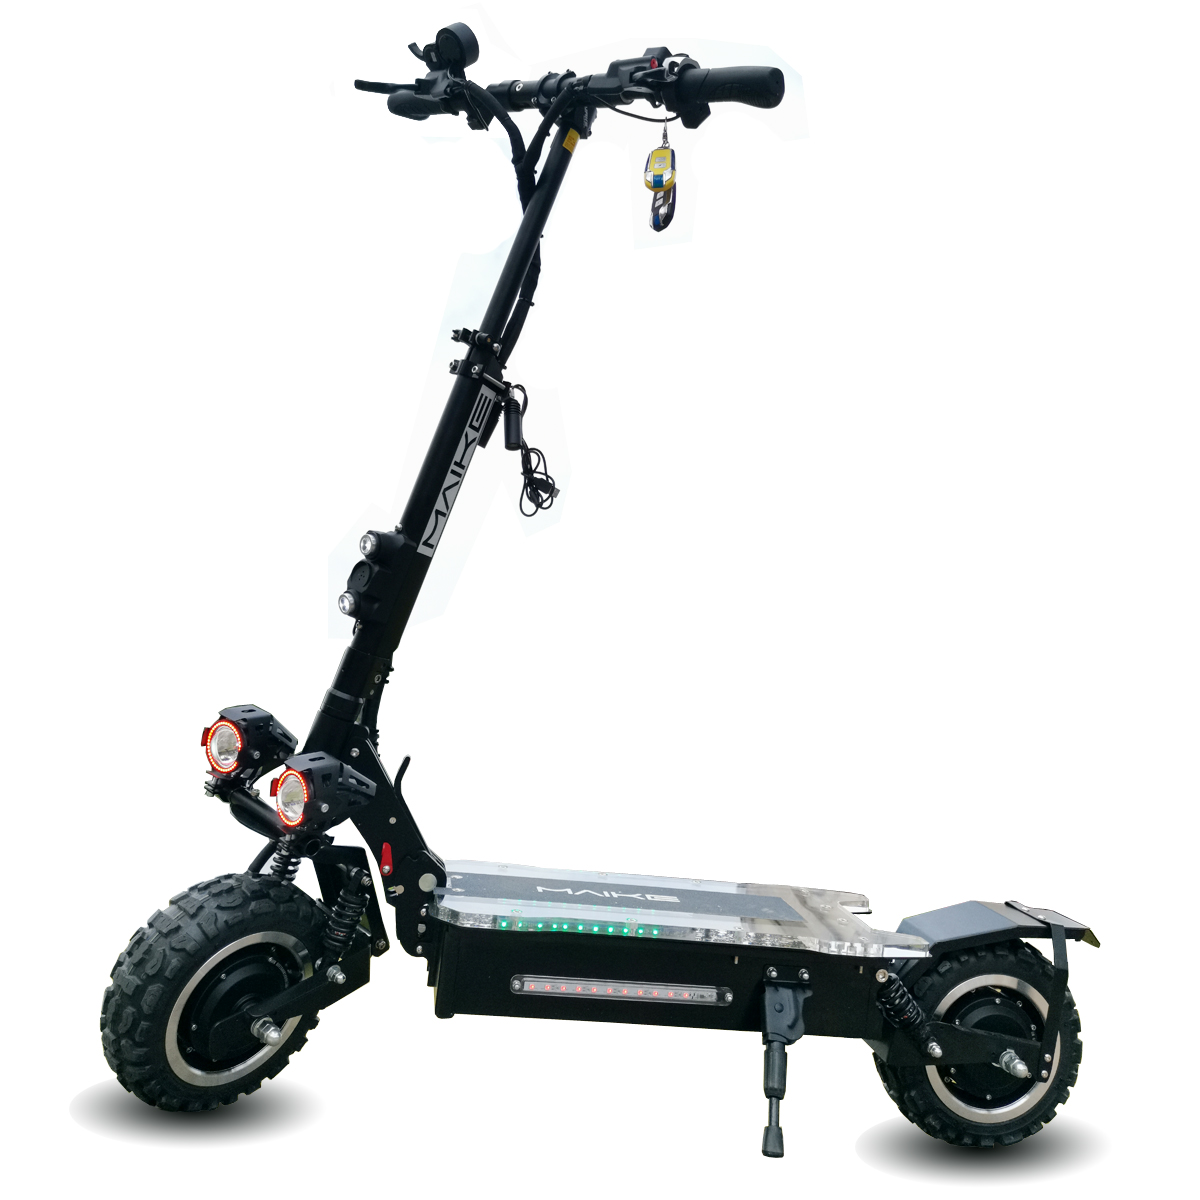 Hot Maike kk4s 60v powerful dual motor 11 inch folding china 3200w electric scooter for adults